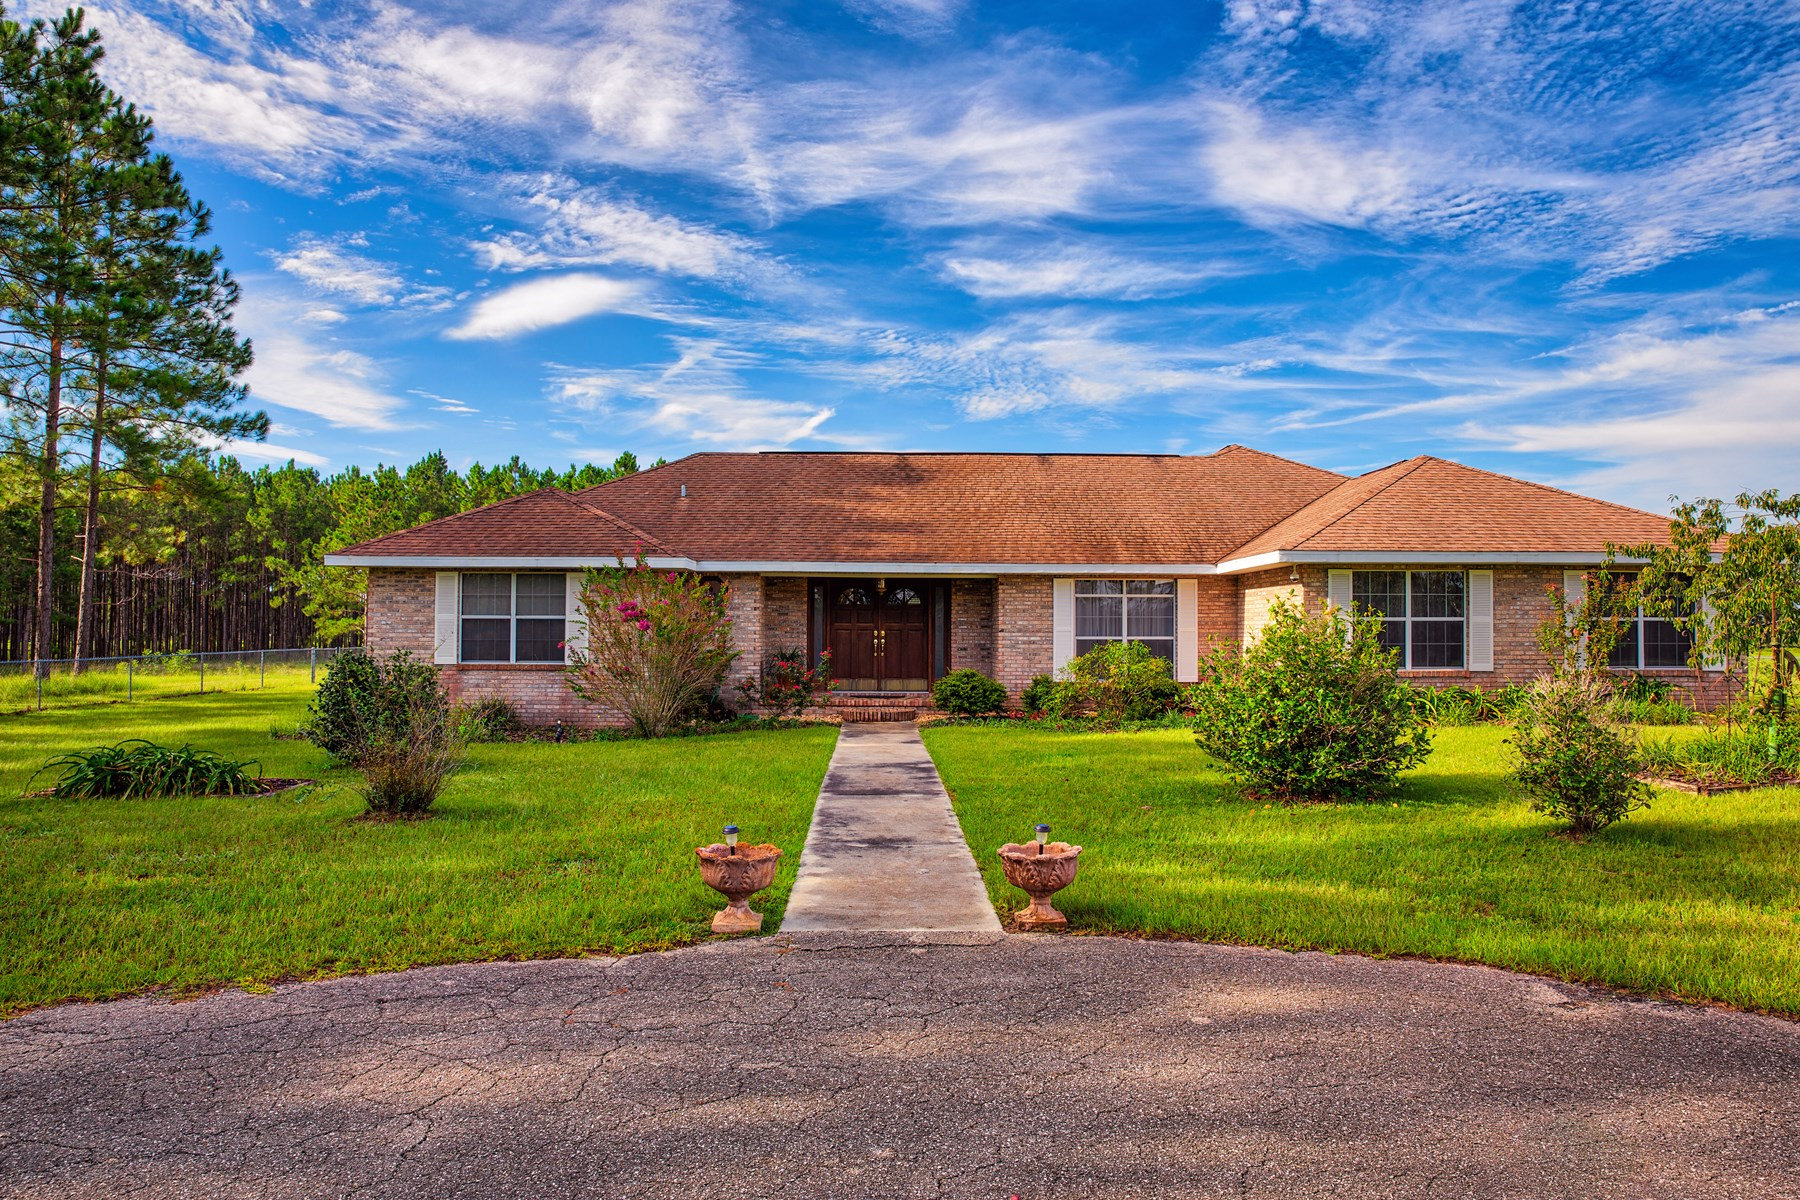 BEAUTIFUL BRICK HOME WITH ACREAGE - NEWBERRY, FL